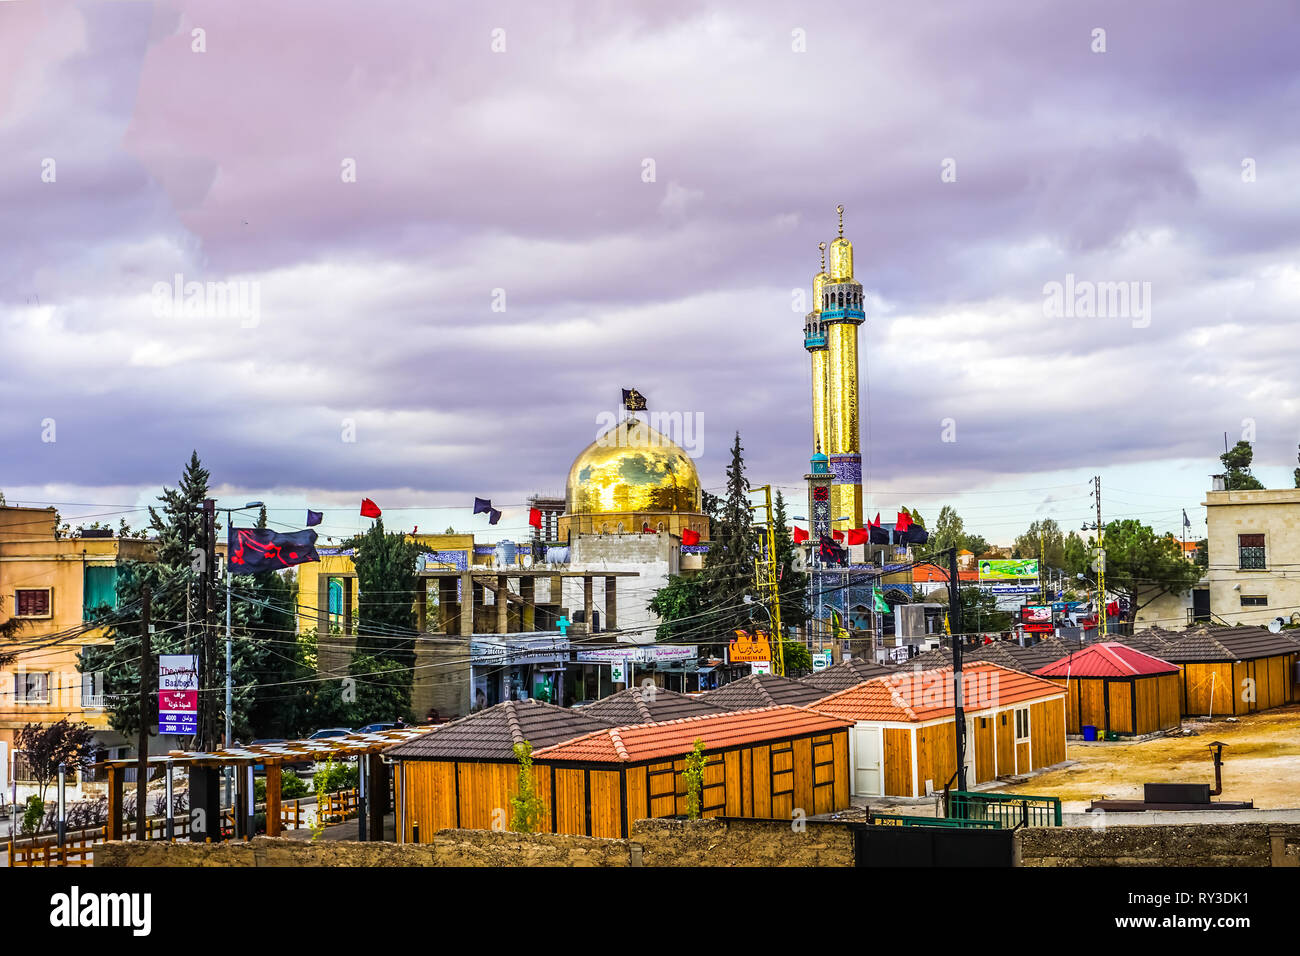 Baalbek Sayyida Khawla Shia Mosque Side View with Golden Minarets - Stock Image